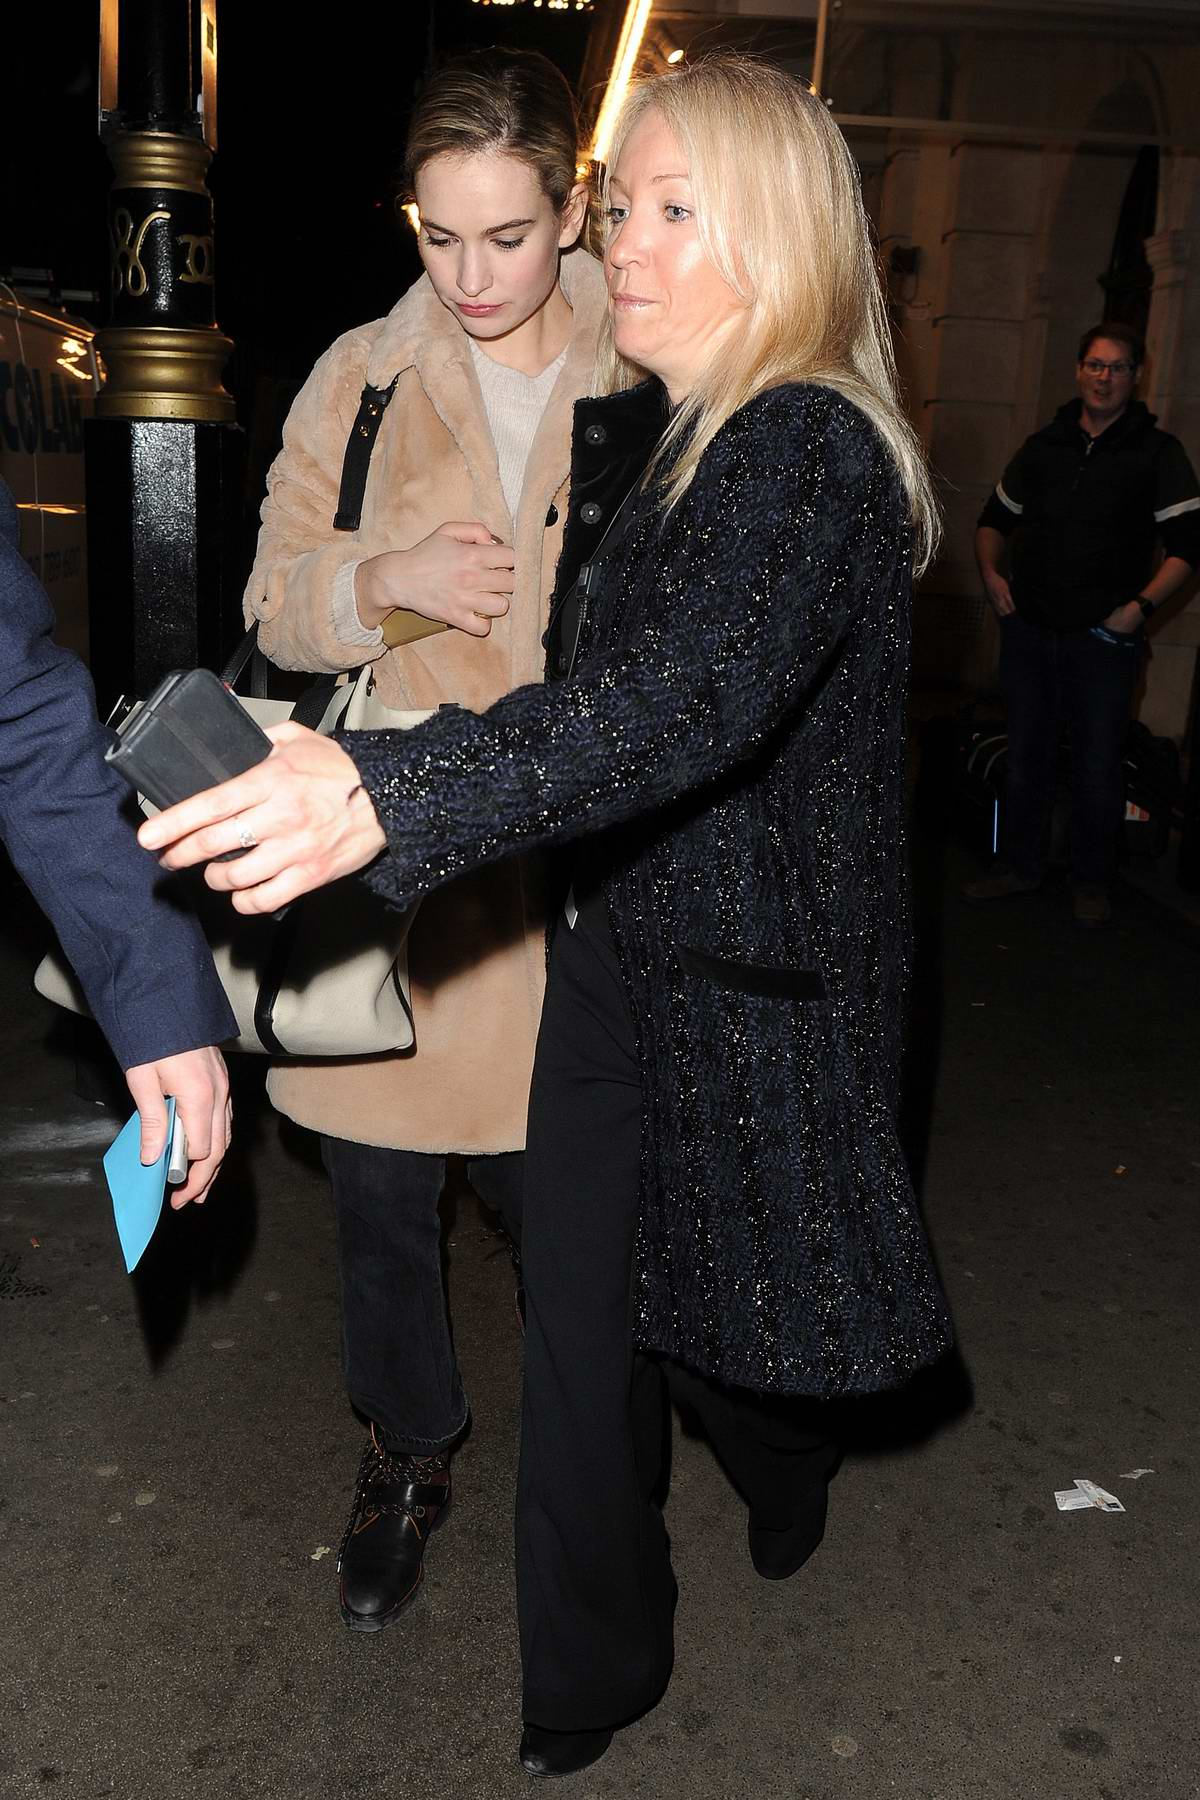 Lily James carries a Valentino bag as she leaves the Noel Coward Theatre Carrying in London, UK